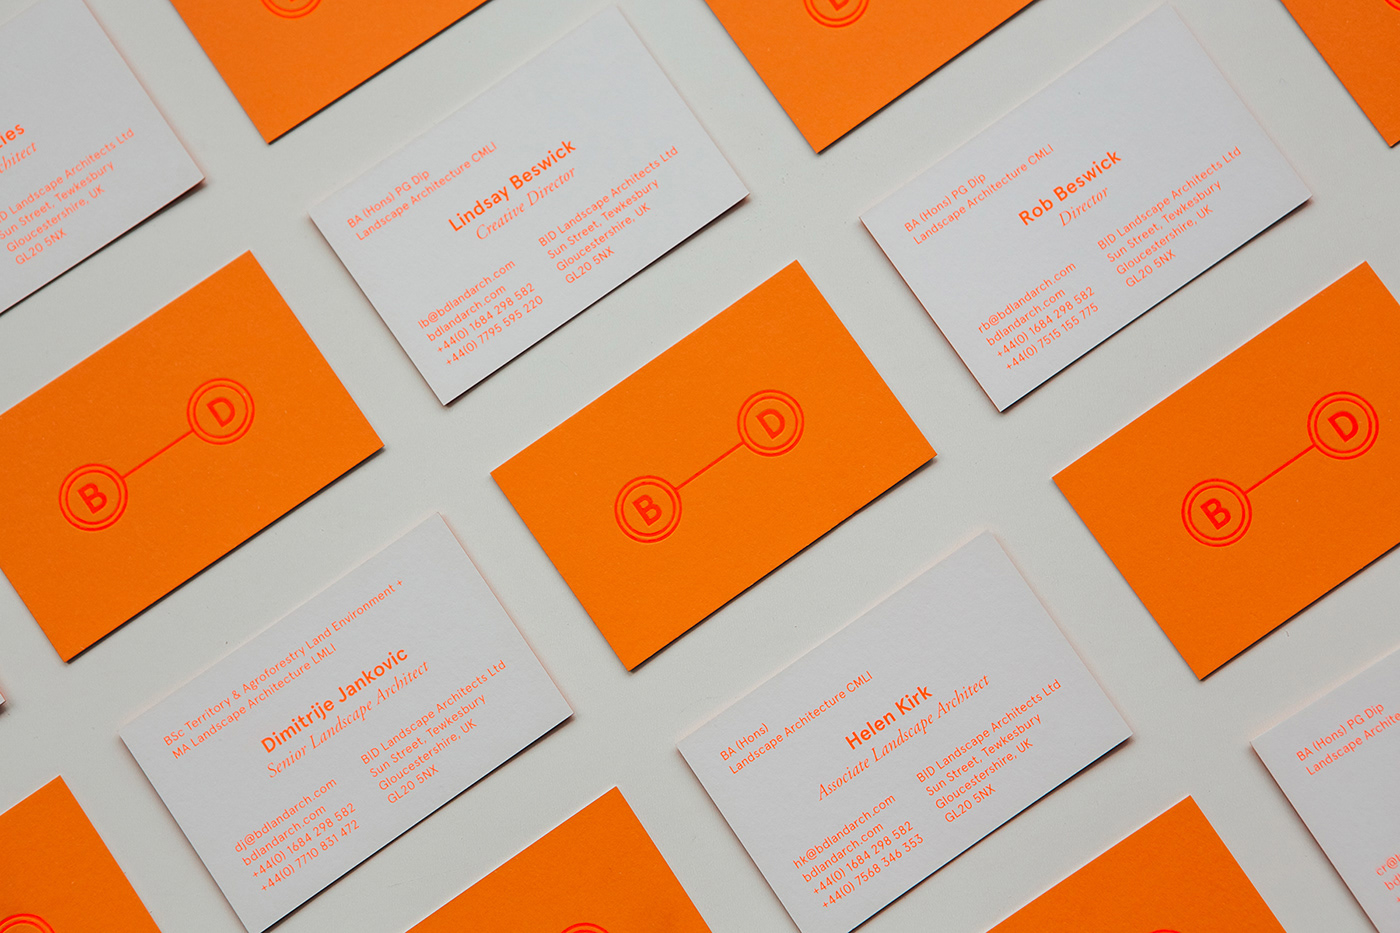 architecture book design business card foiling Landscape Landscape Architecture  neon orange postcard Stationery